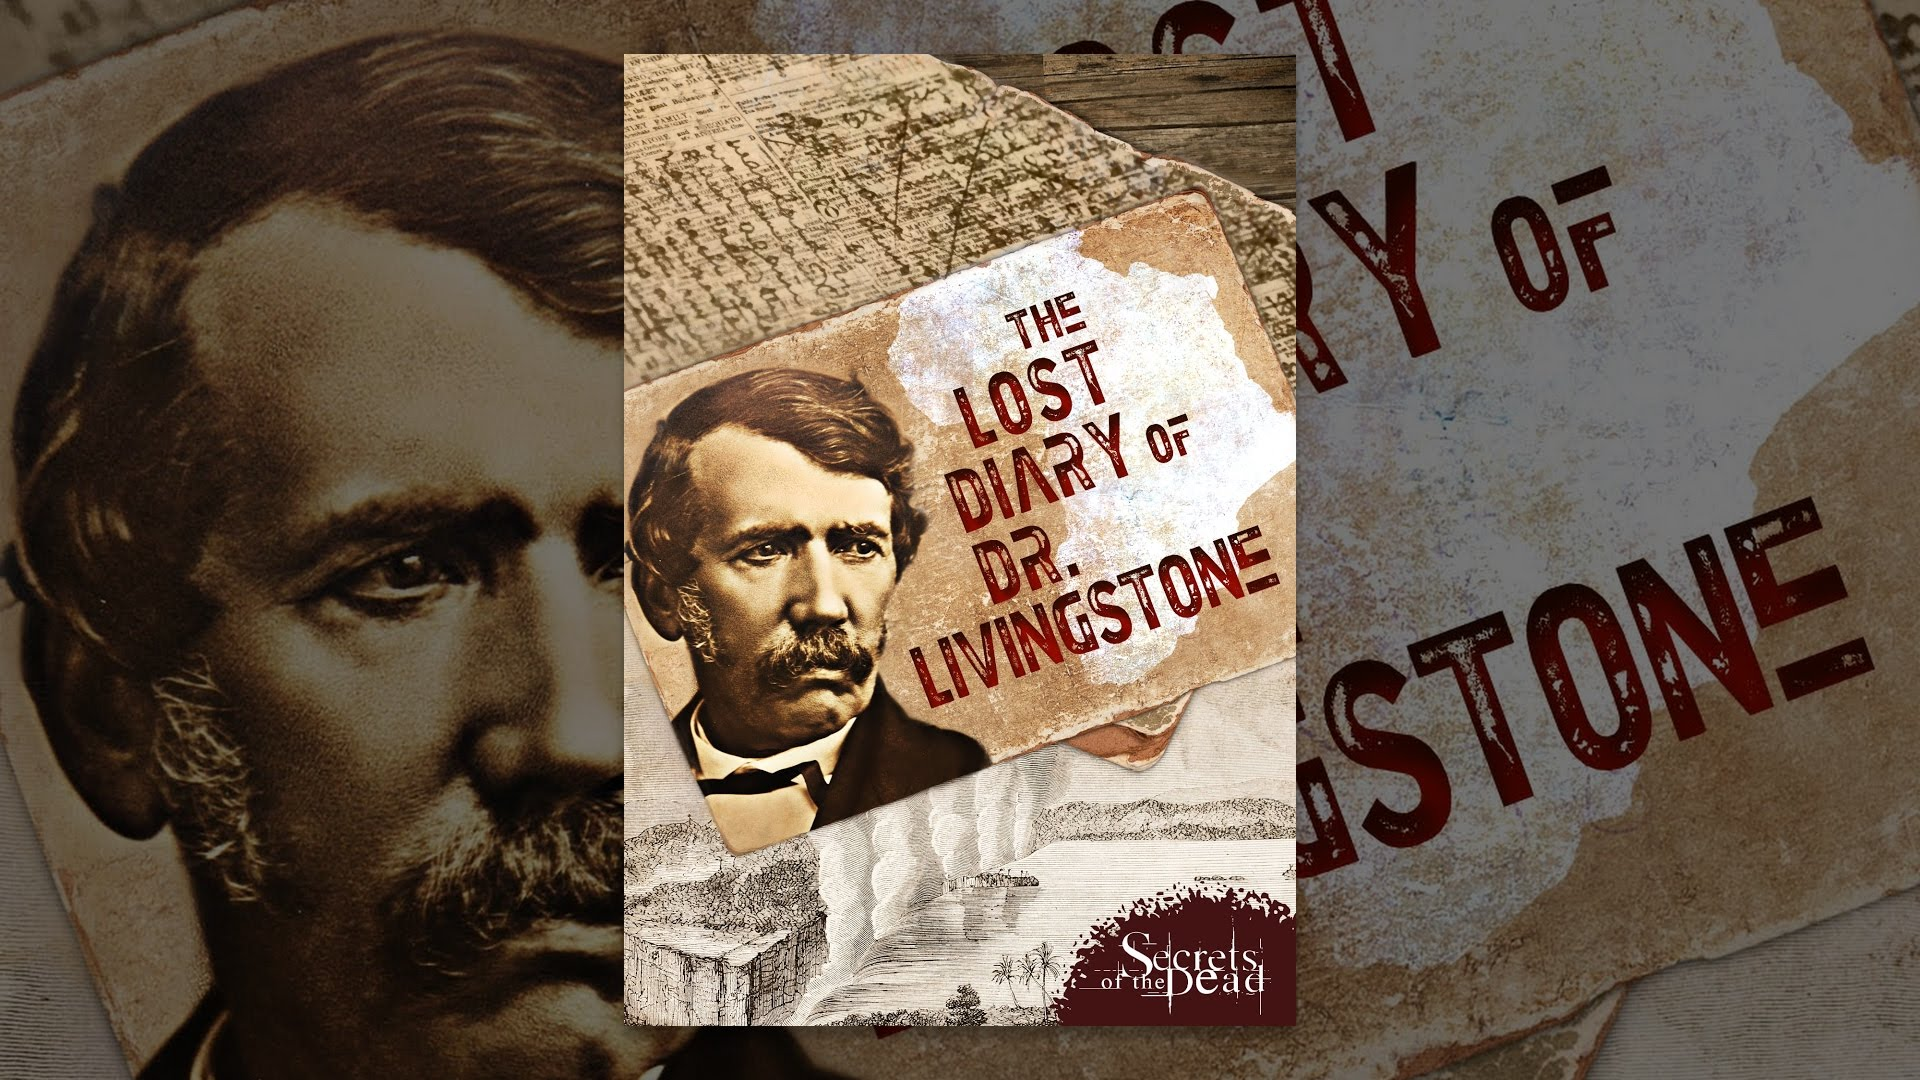 The Lost Diary Of Dr. Livingstone   YouTube